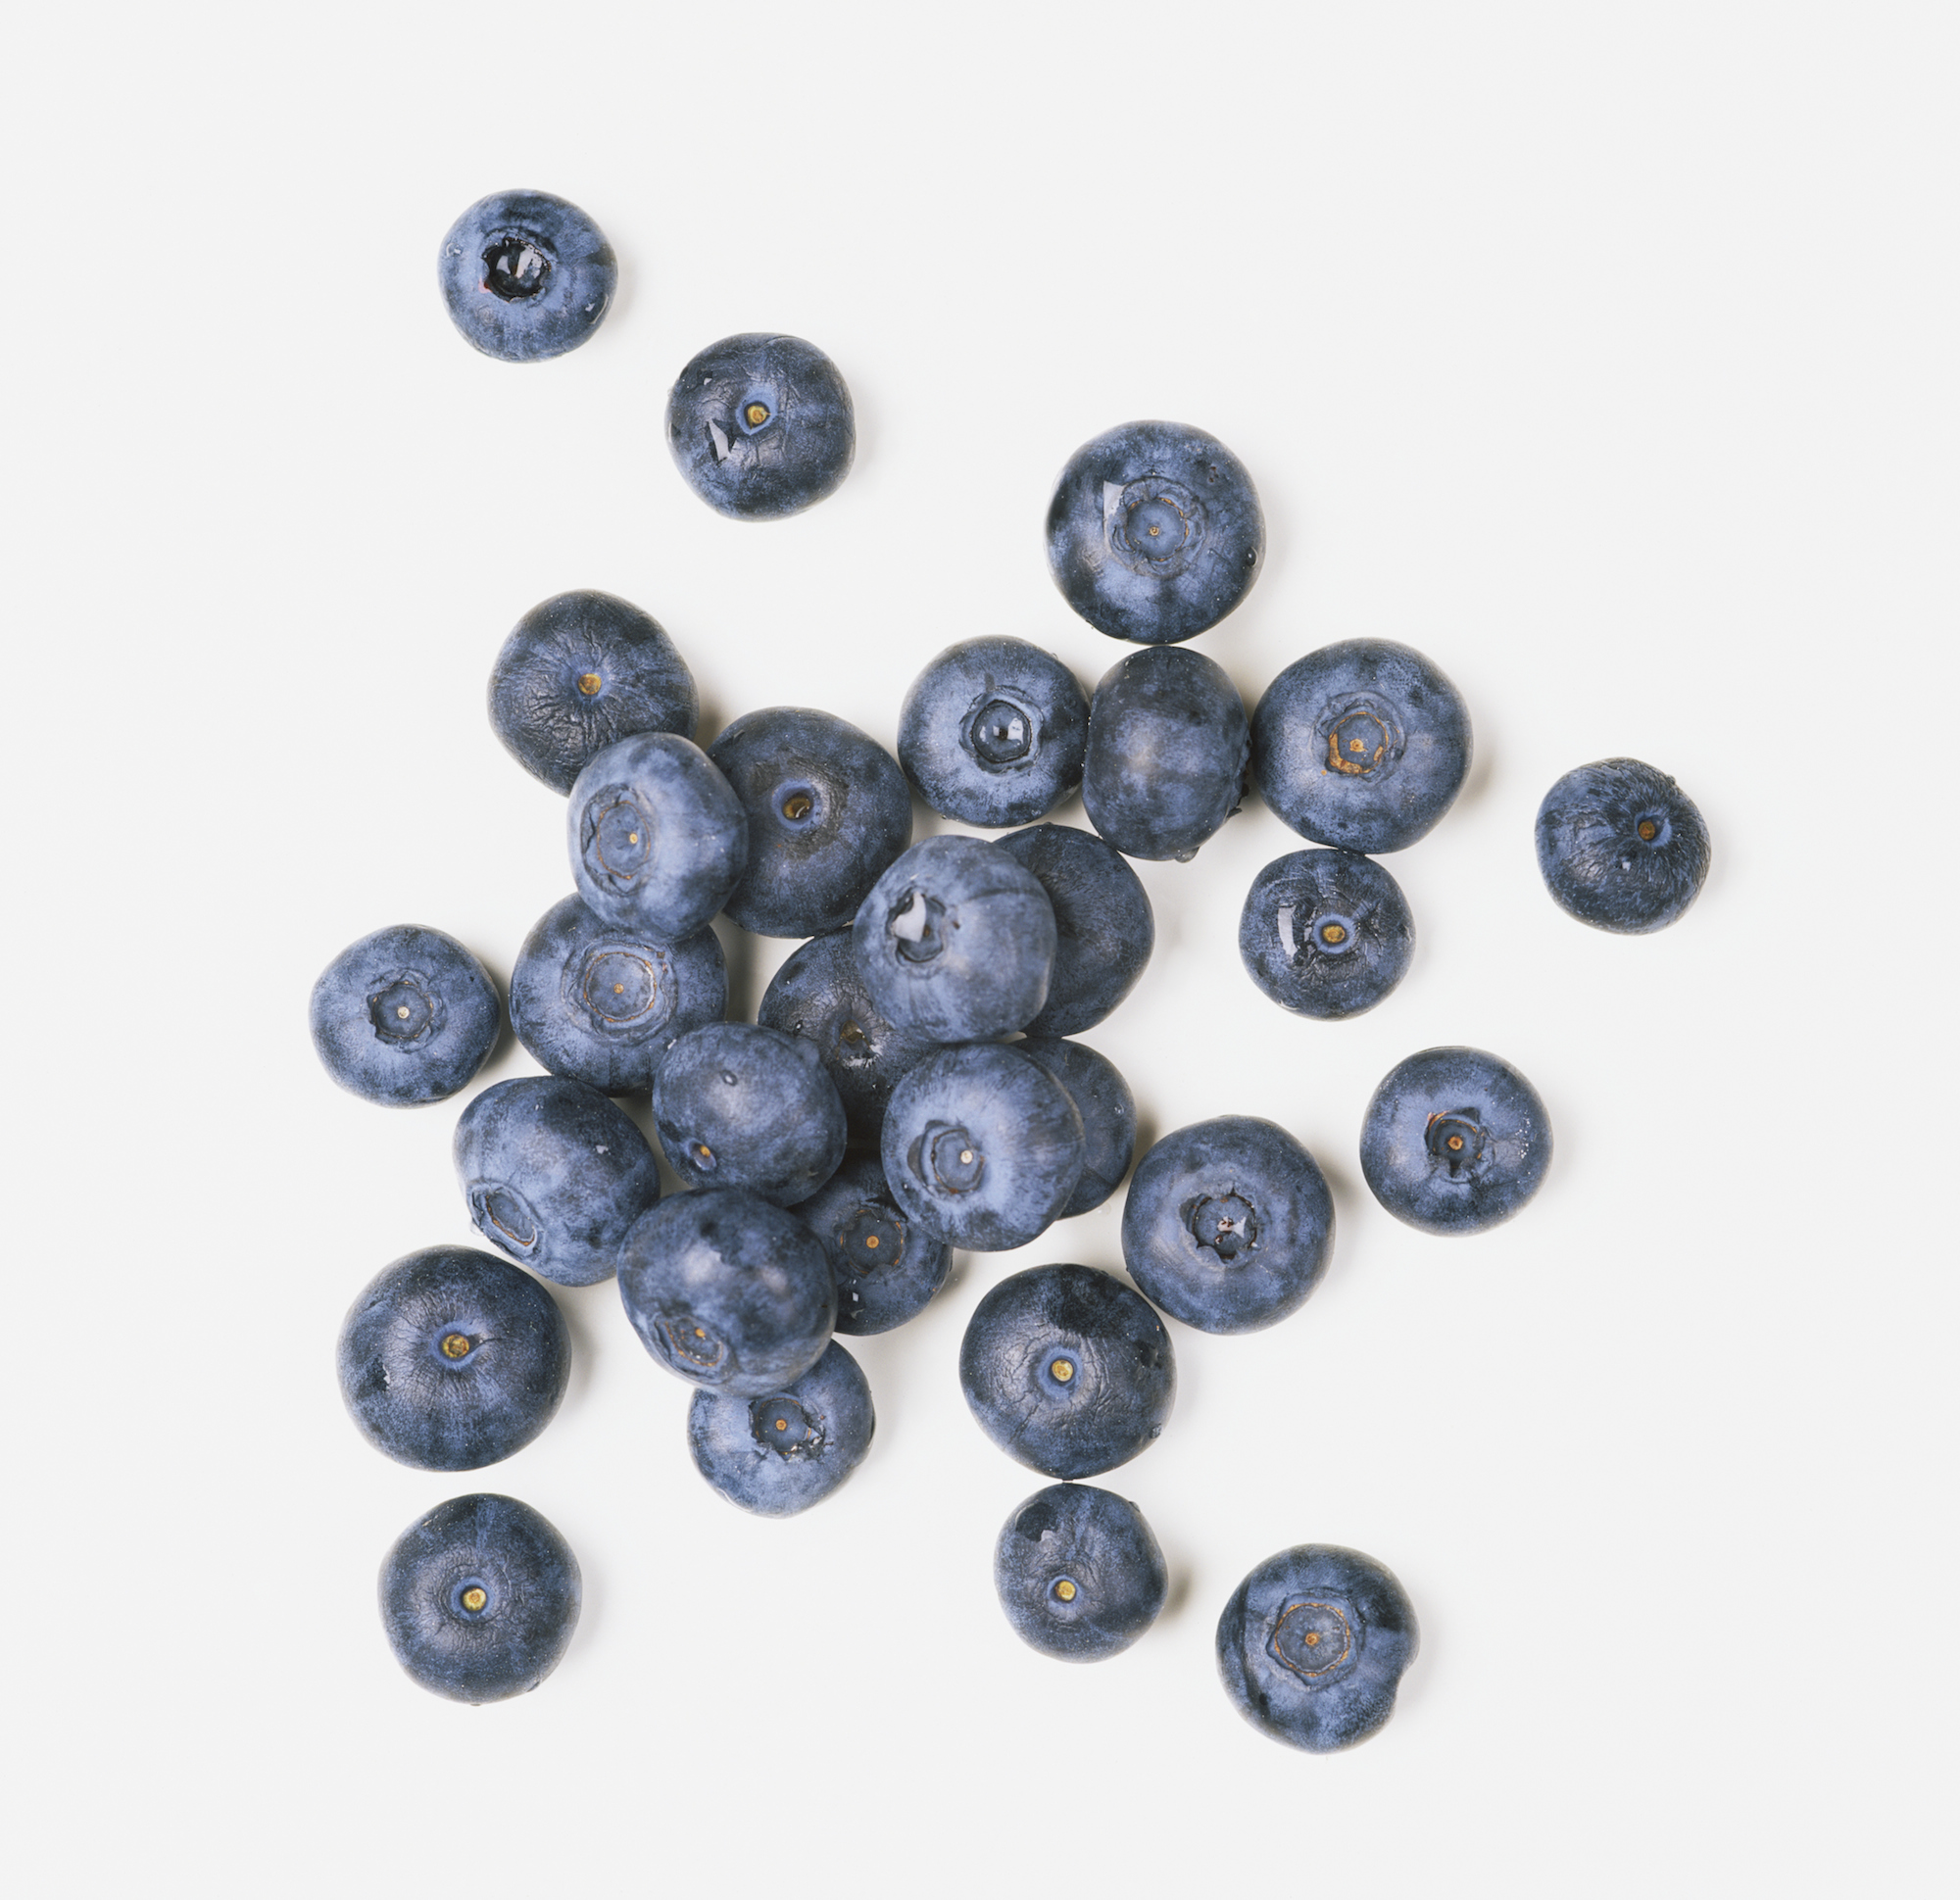 Pile of blueberries.